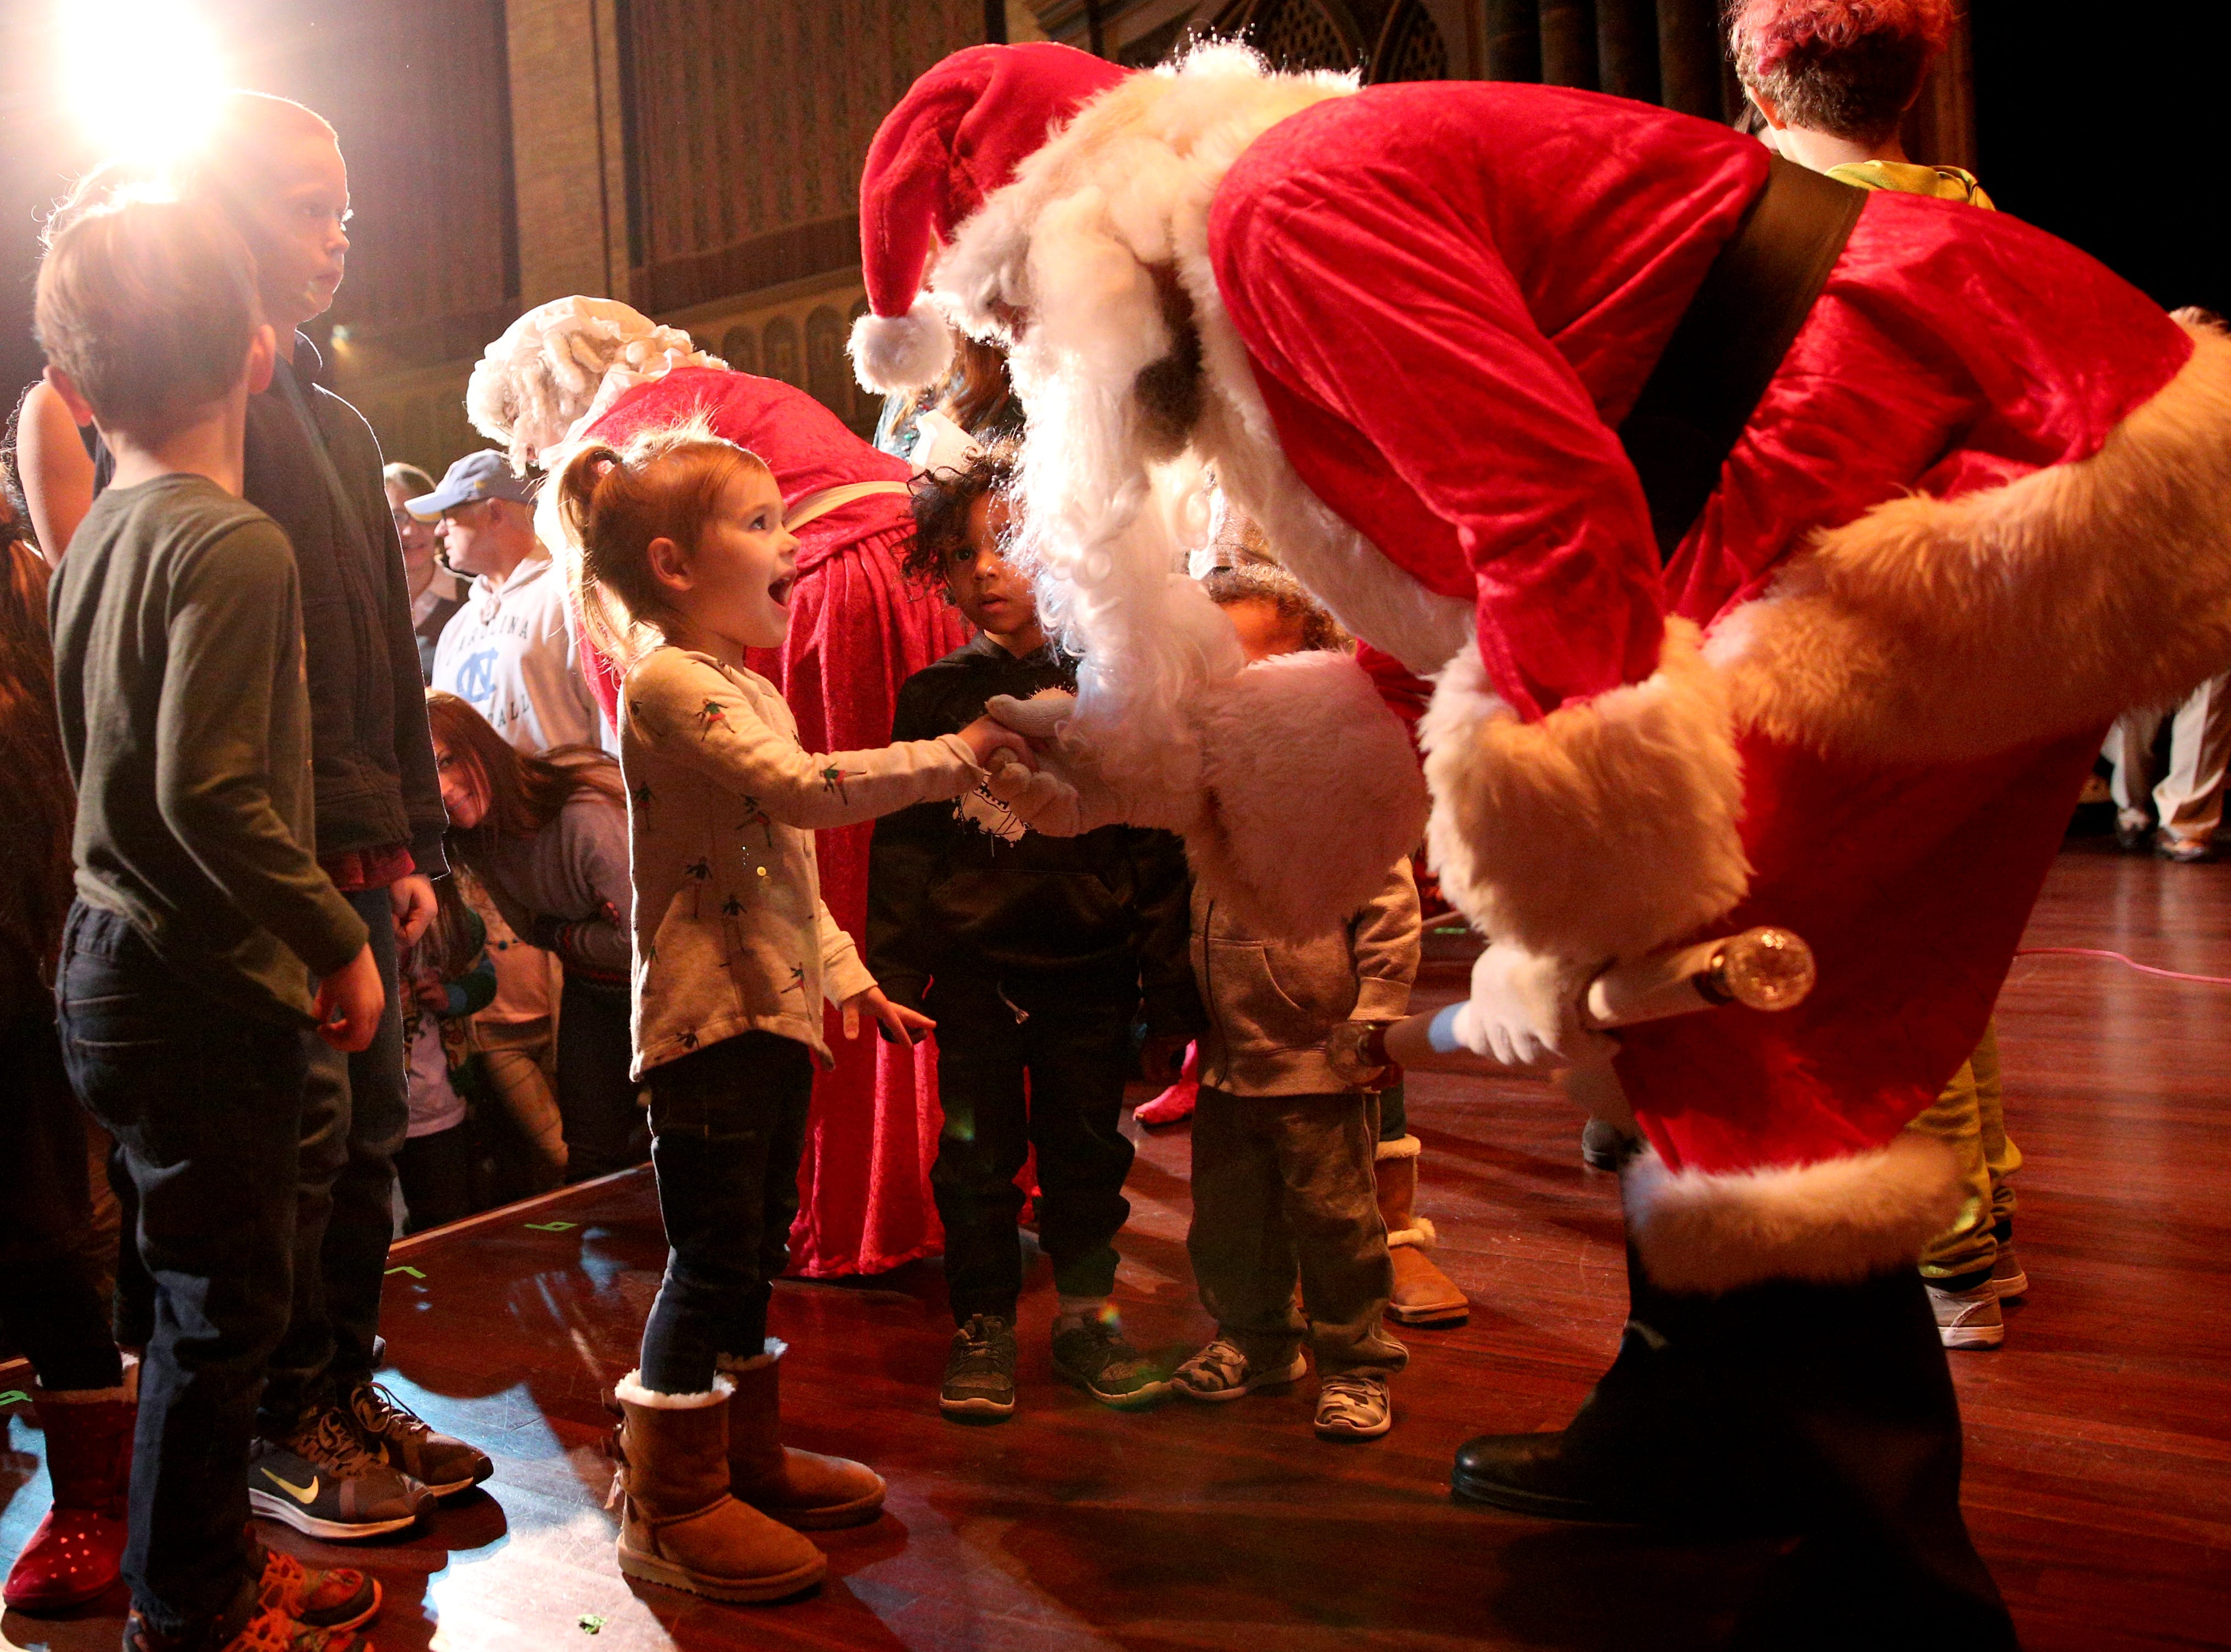 Santa Claus greets children and listens to their wishes at the 78th annual children's holiday party at the Elsinore Theatre on Saturday, Dec. 1, 2018. The party included holiday music and a visit from Santa.